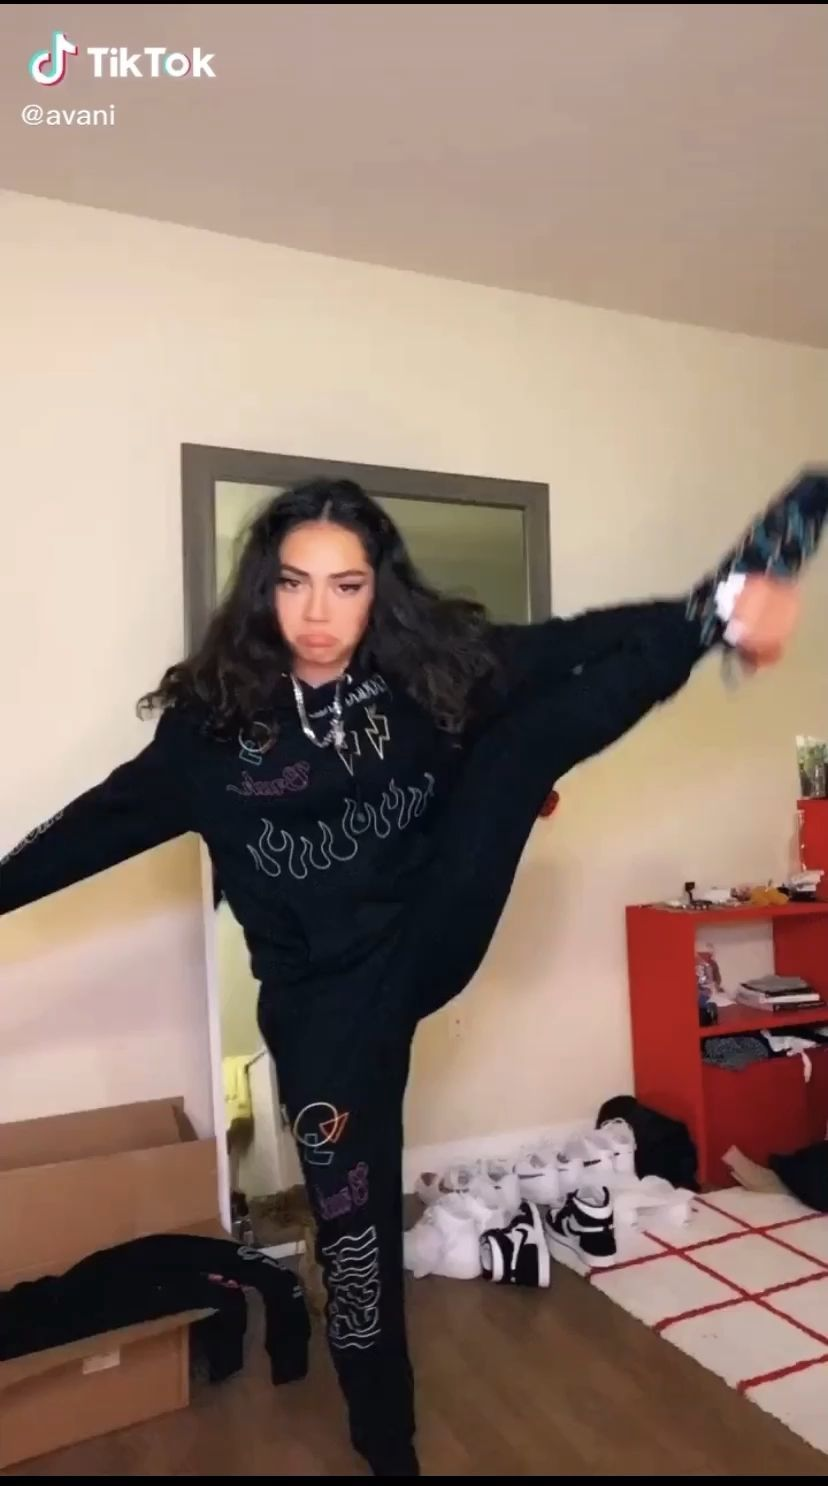 Funny Tik Tok In 2020 Dance Videos Winter Fashion Outfits Fashion